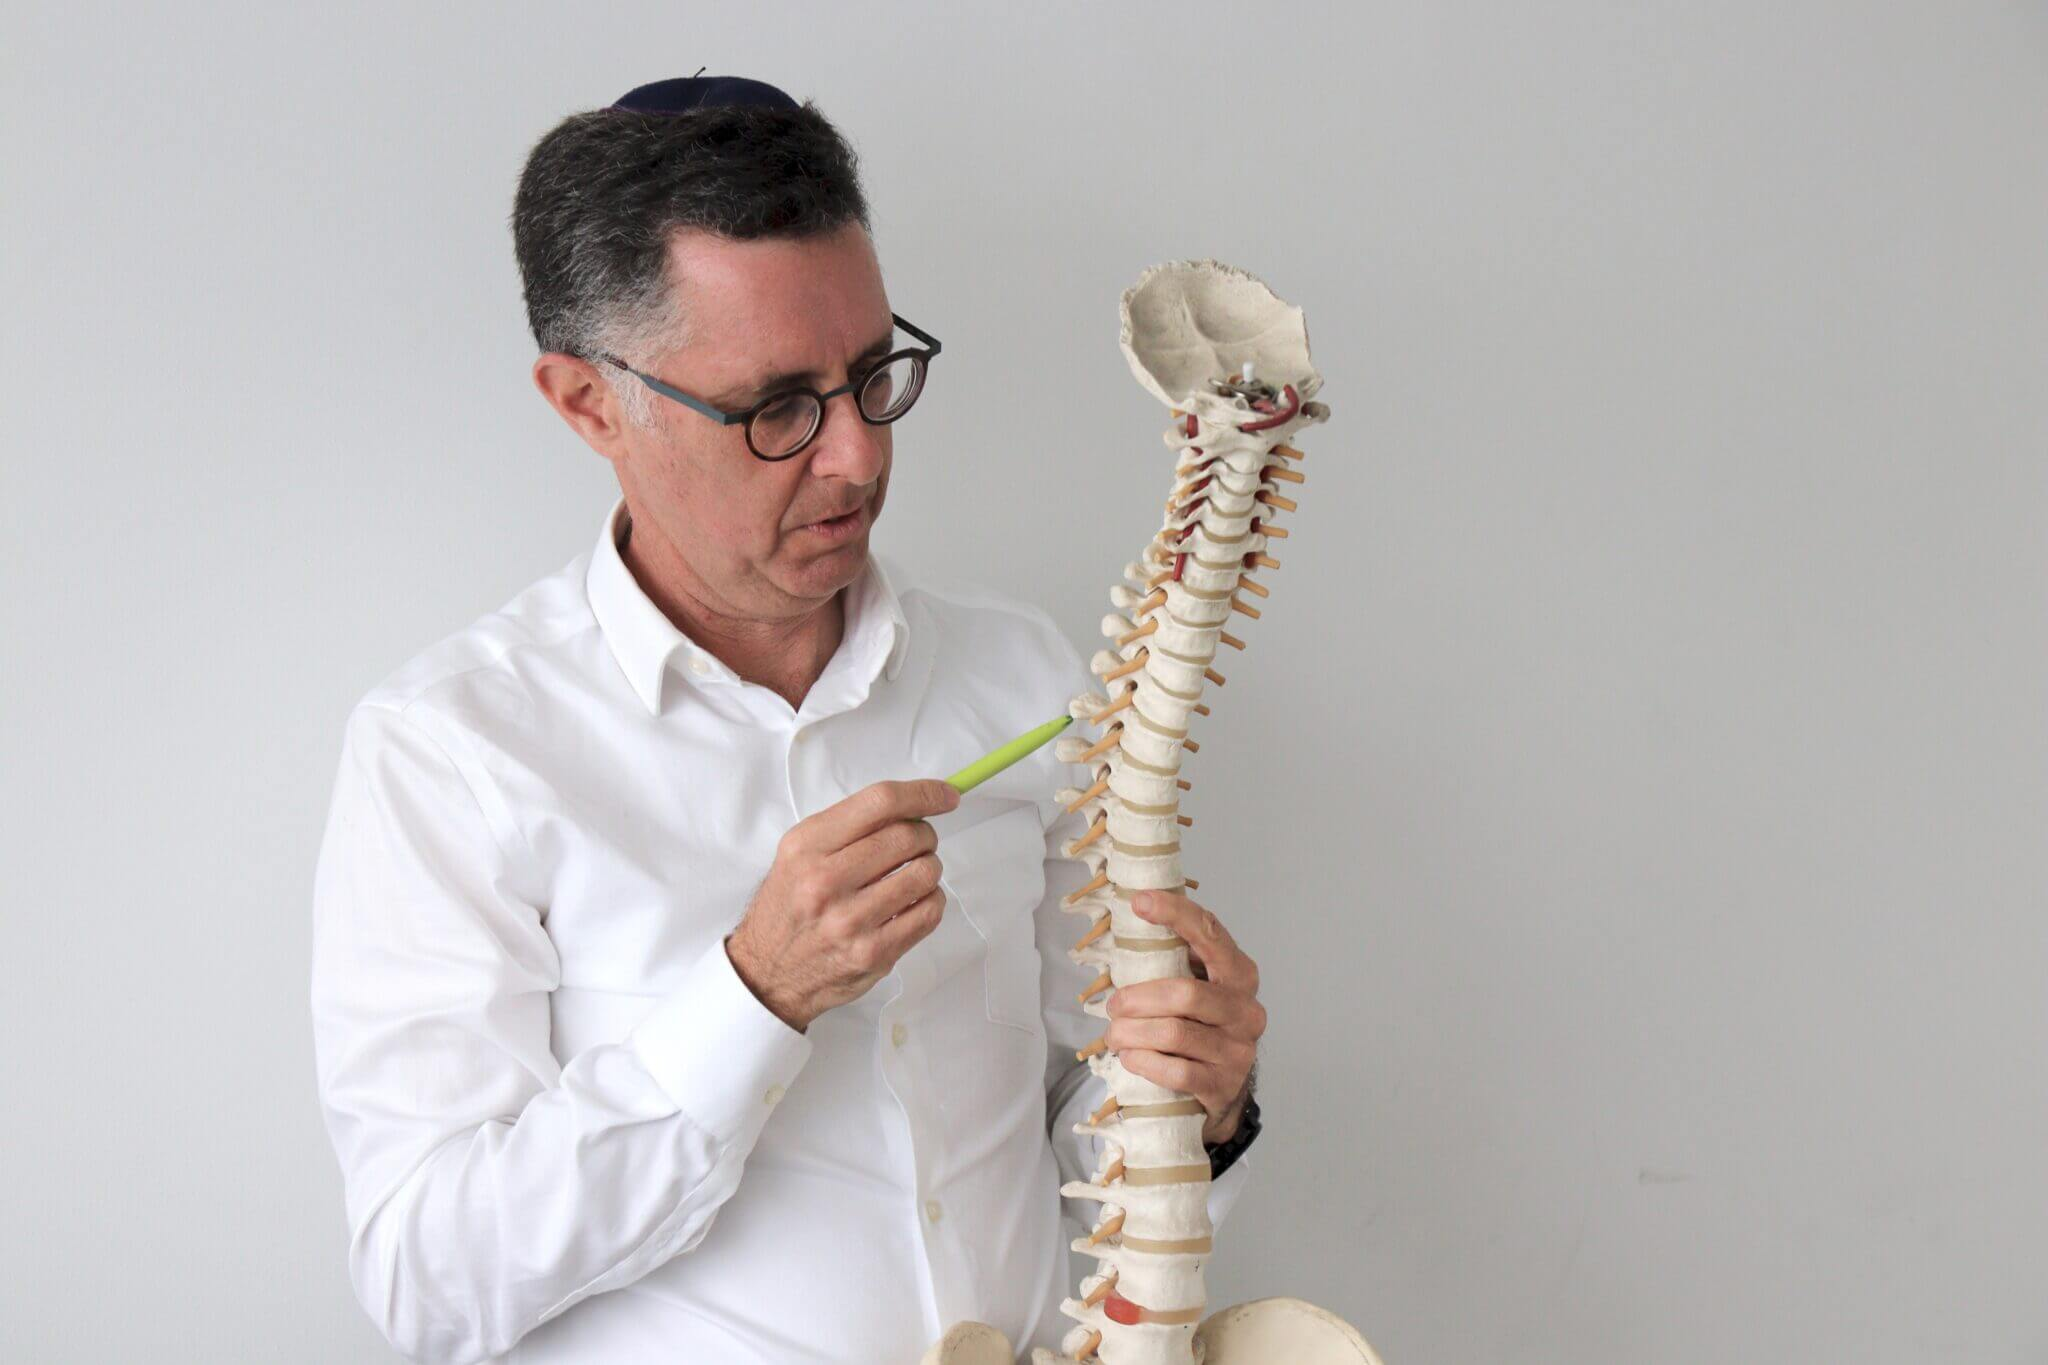 What is a slipped disc